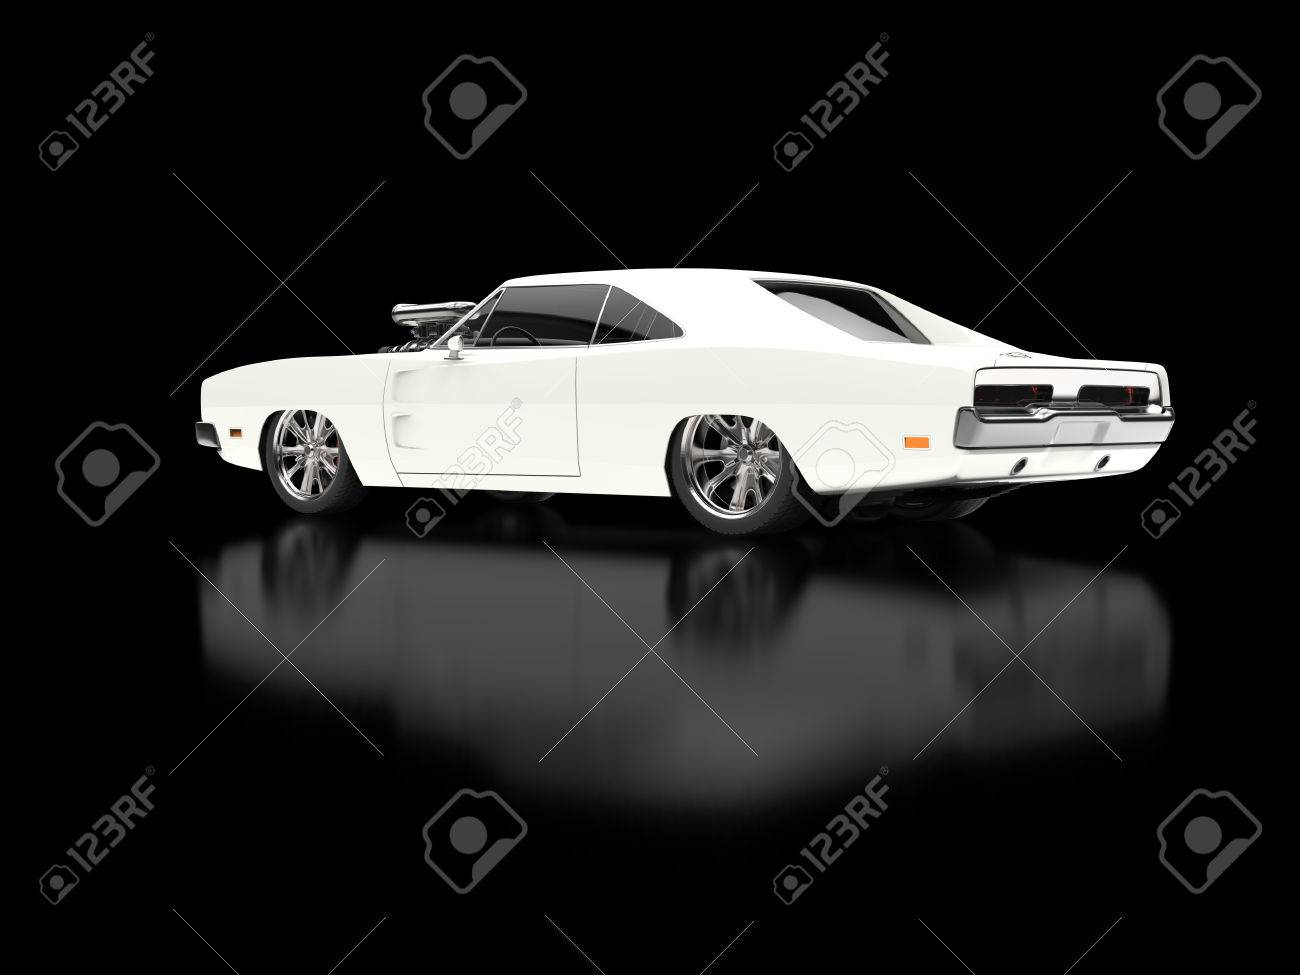 Awesome Vintage White Muscle Car On Black Reflective Background ...